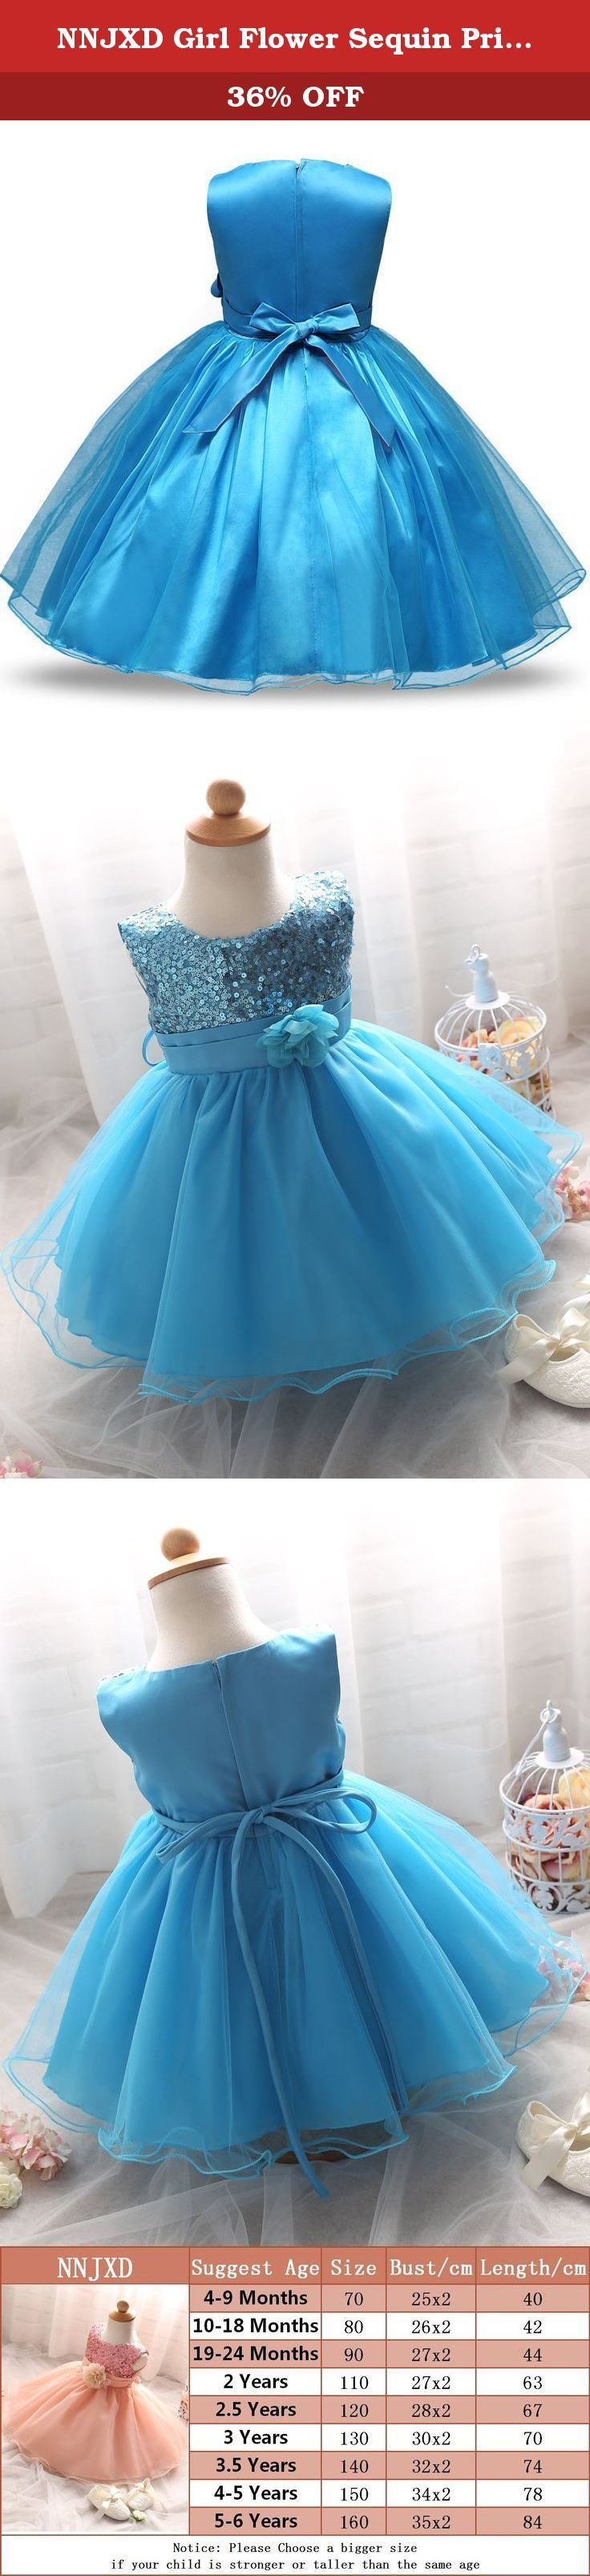 NNJXD Girl Flower Sequin Princess Tutu Tulle Baby Party Dress Size 5 ...